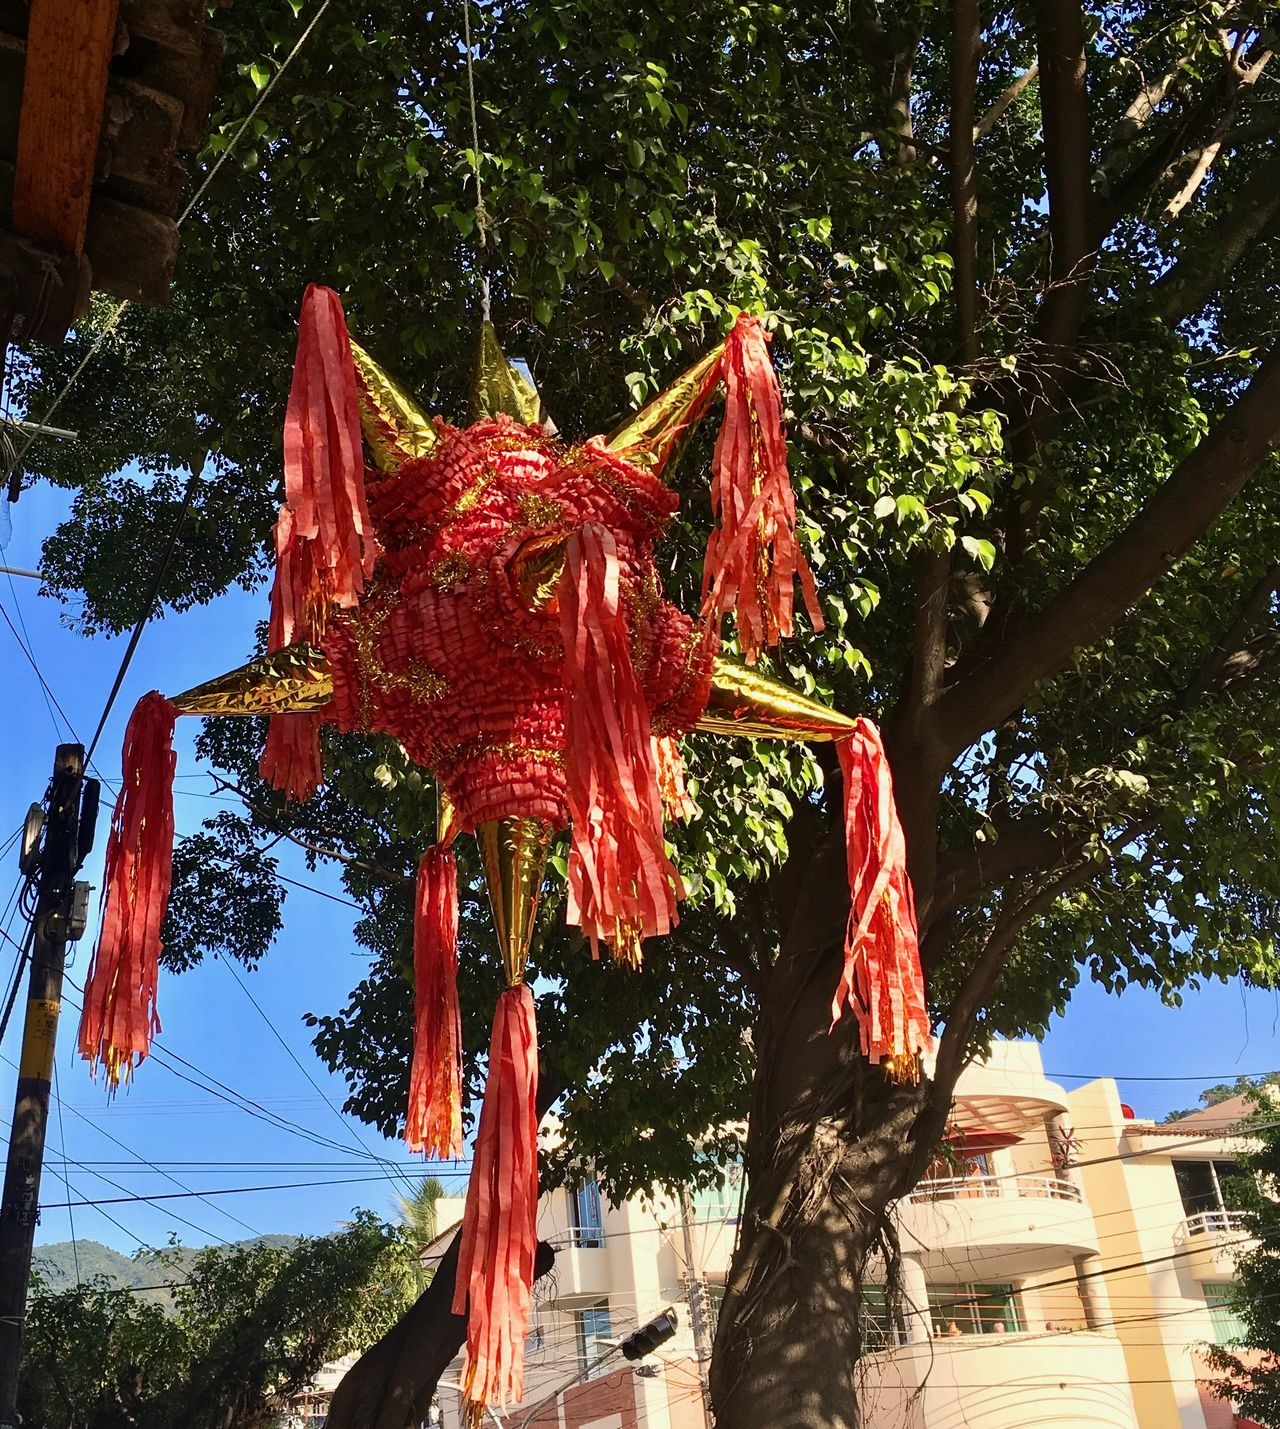 Piñata times Traditional Culture Day No People Built Structure Mexican Culture Sky Piñata Red Blue Sky